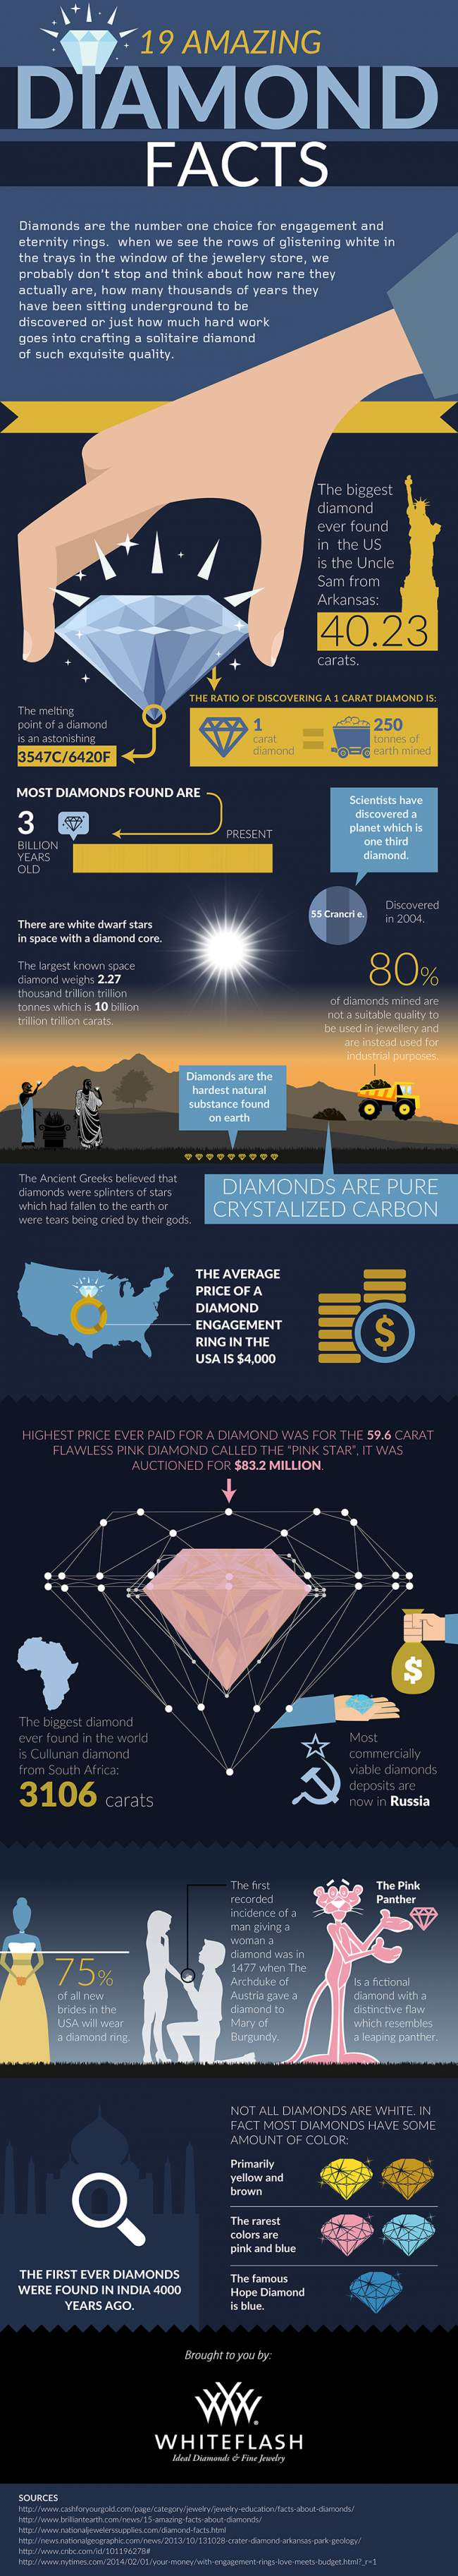 Amazing-Diamond-Facts.jpg